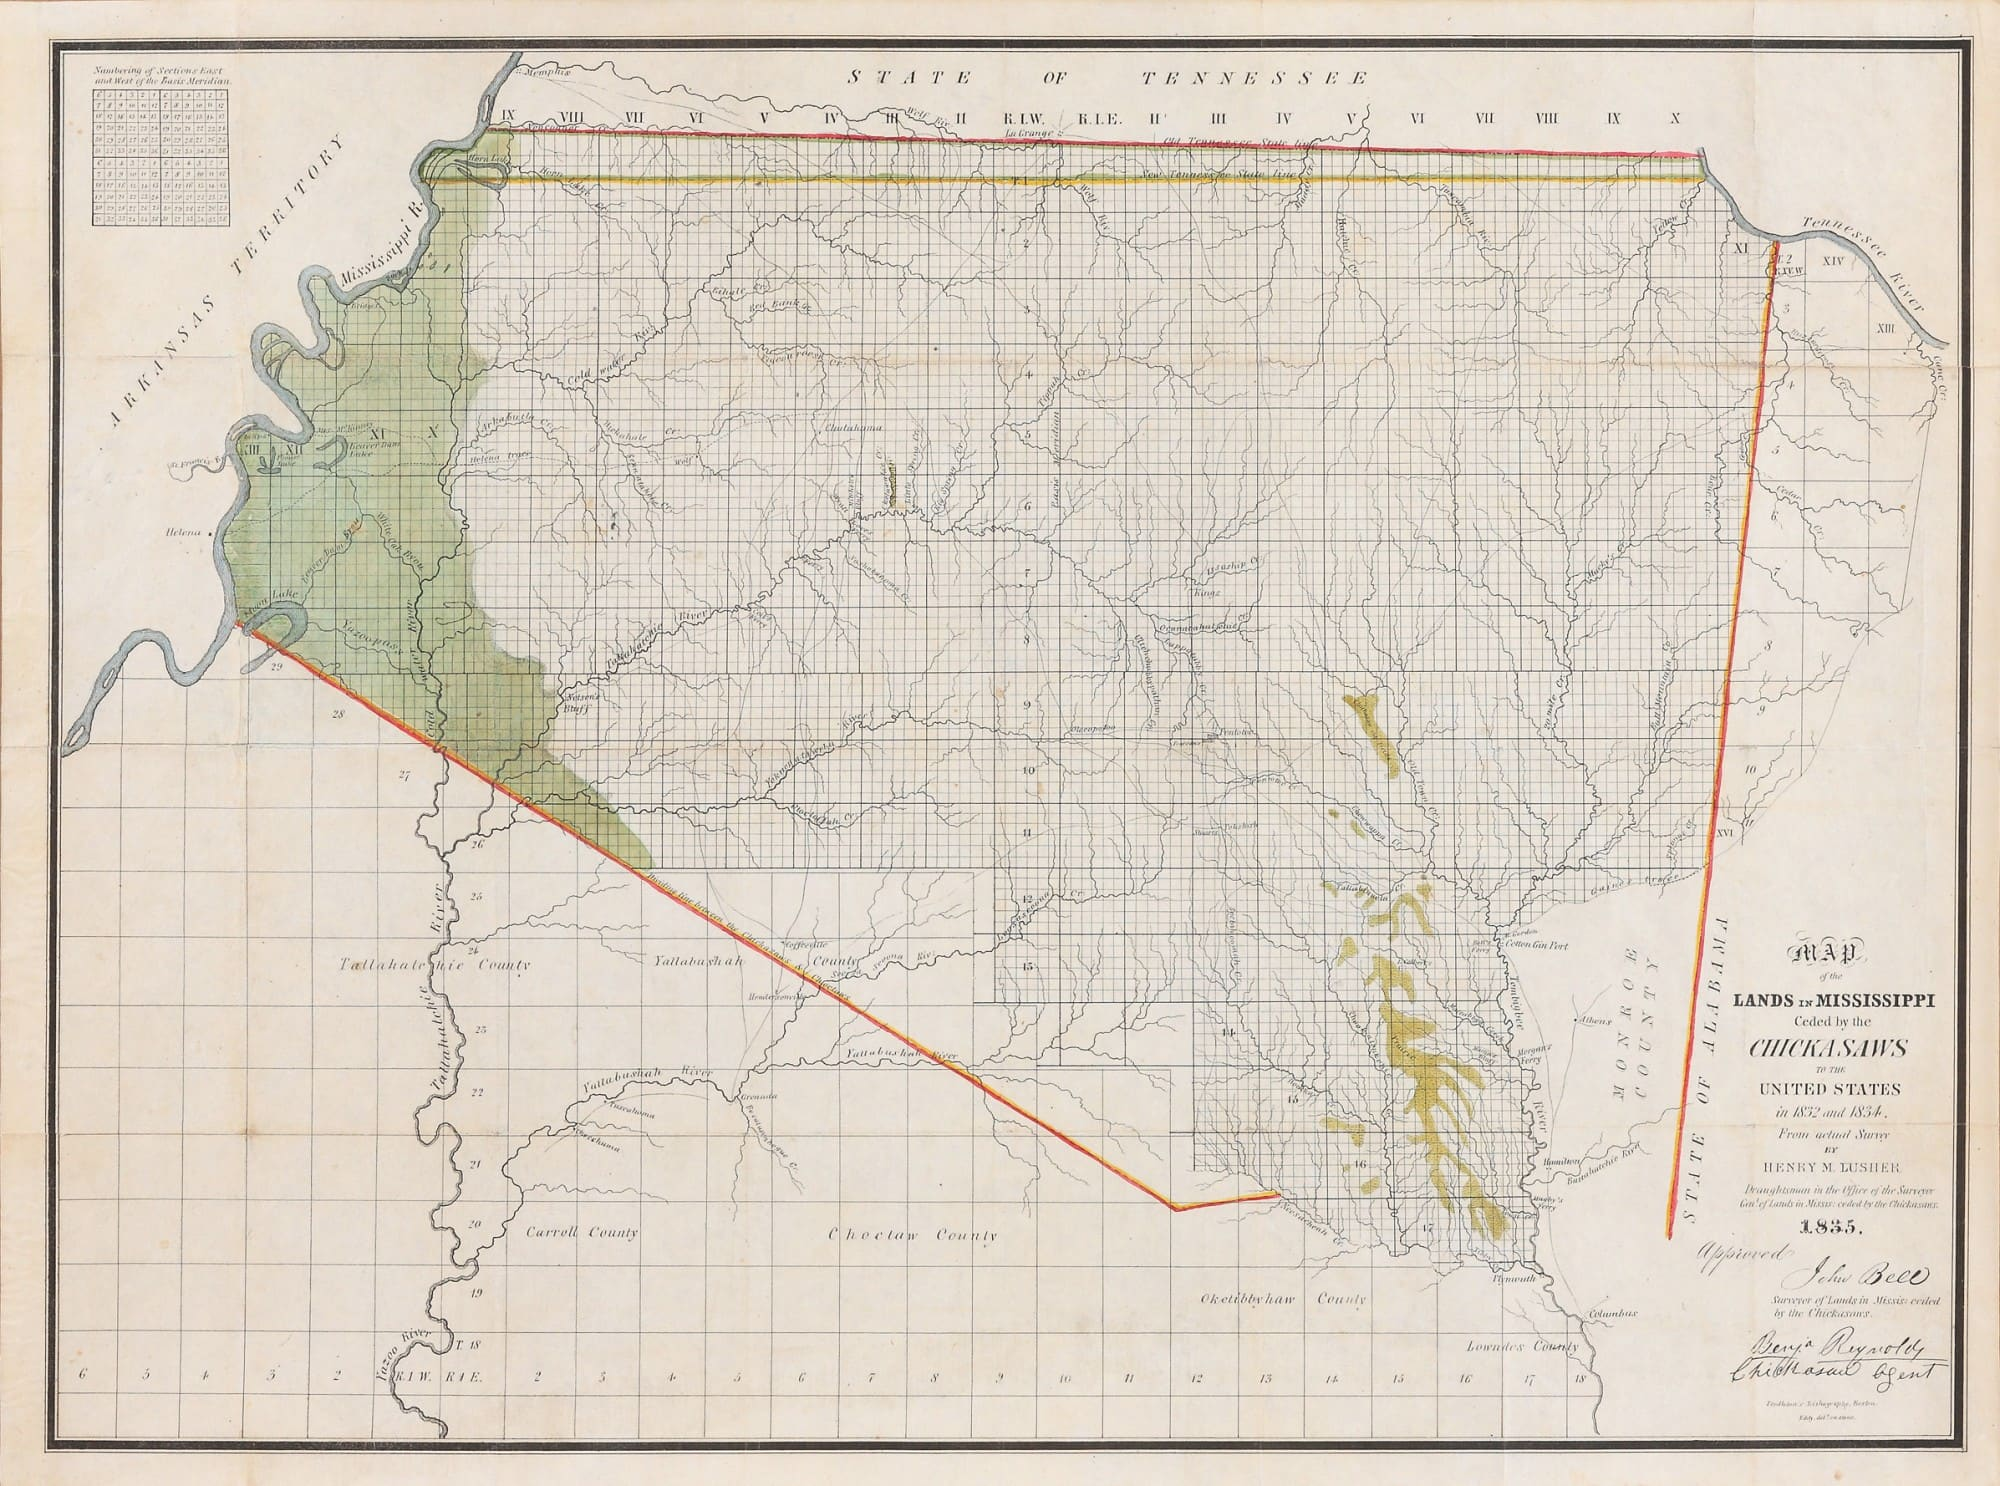 Relating To The Trail Of Tears A Most Important Early - Missisippi map